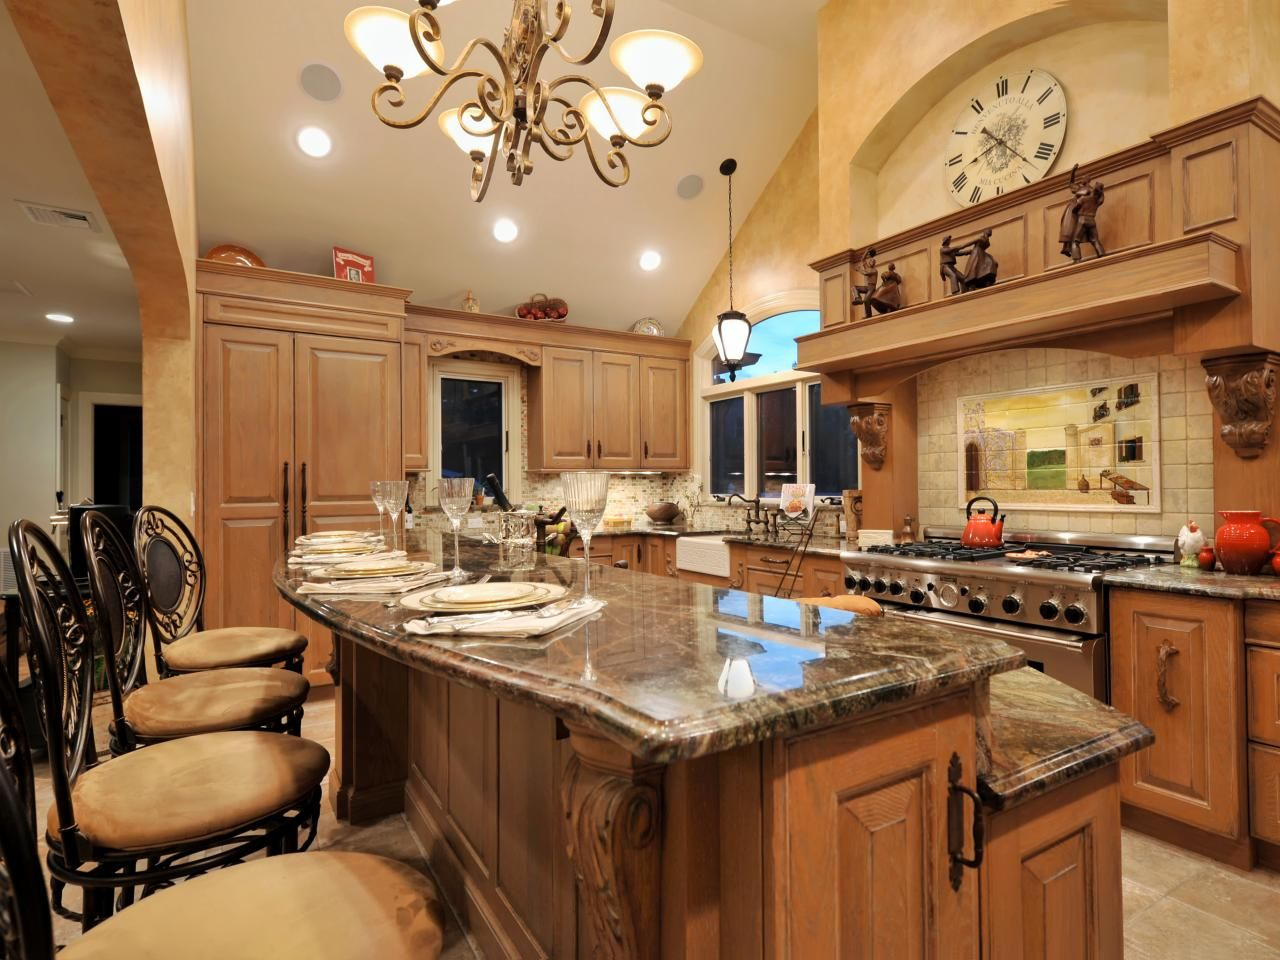 Mediterranean Kitchen With Two Tiered Island Mediterranean Kitchen Design Mediterranean Kitchen Traditional Kitchen Island